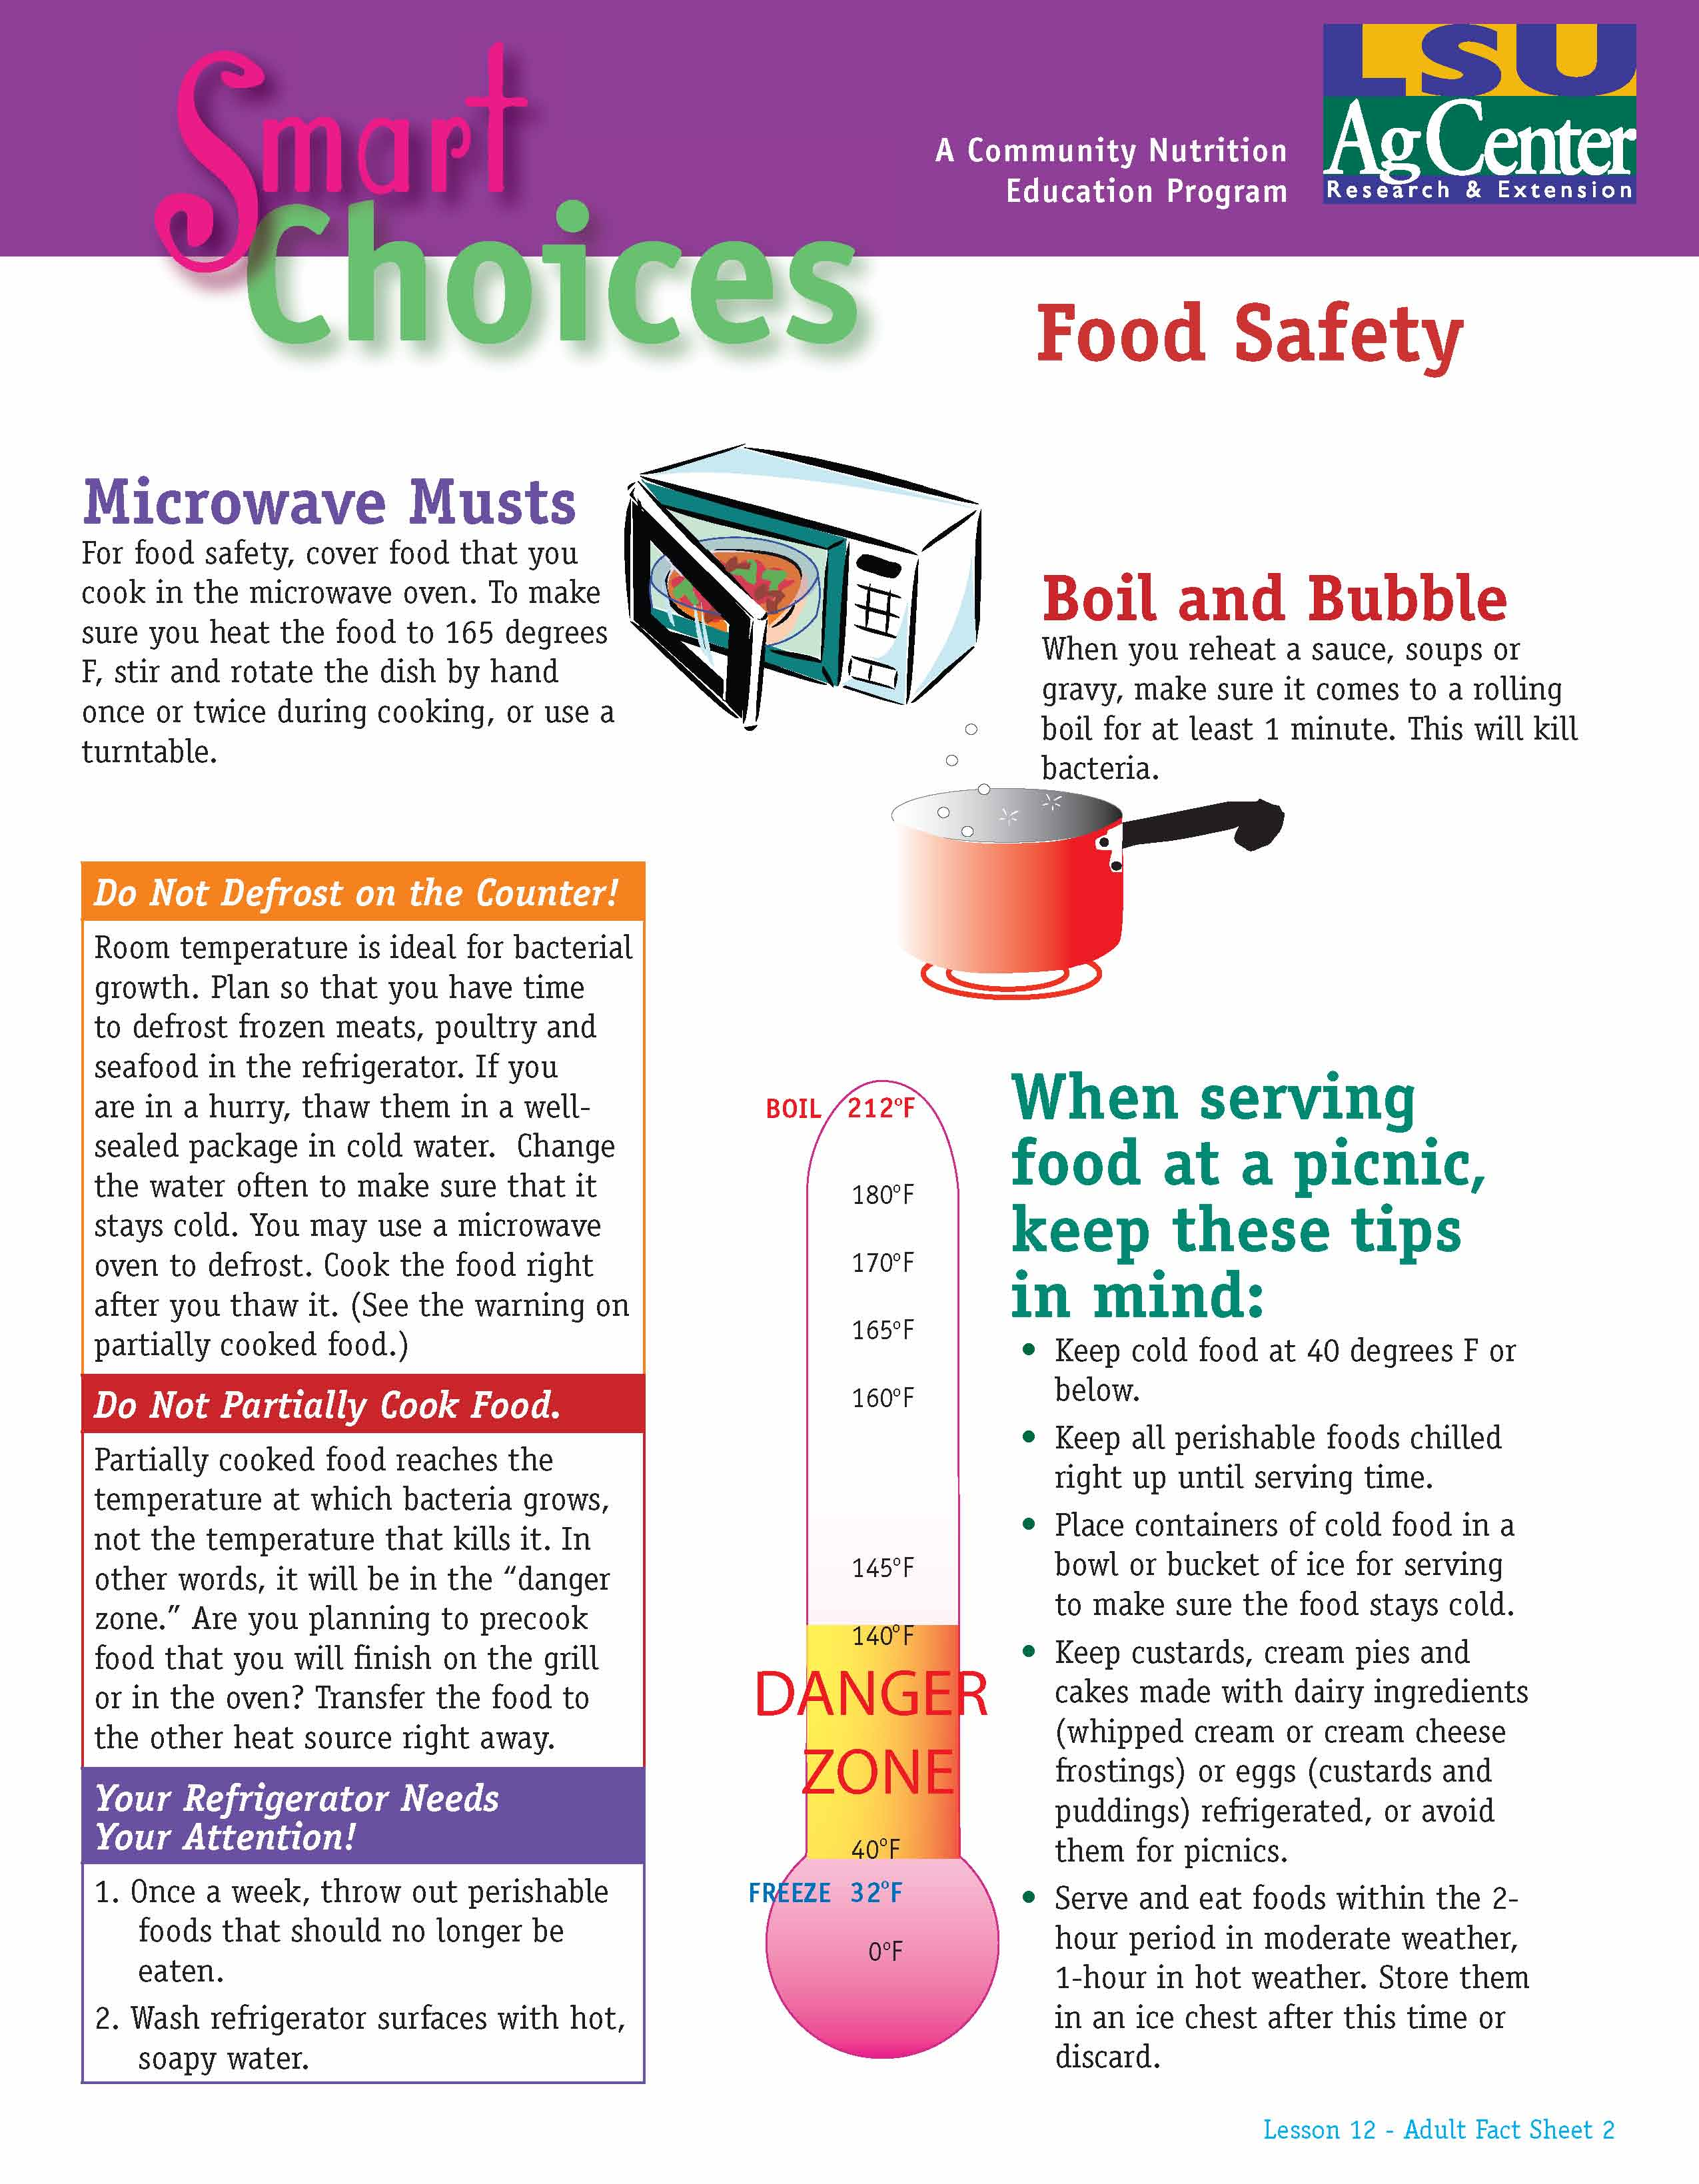 Smart Choices:  Keeping Food Safe